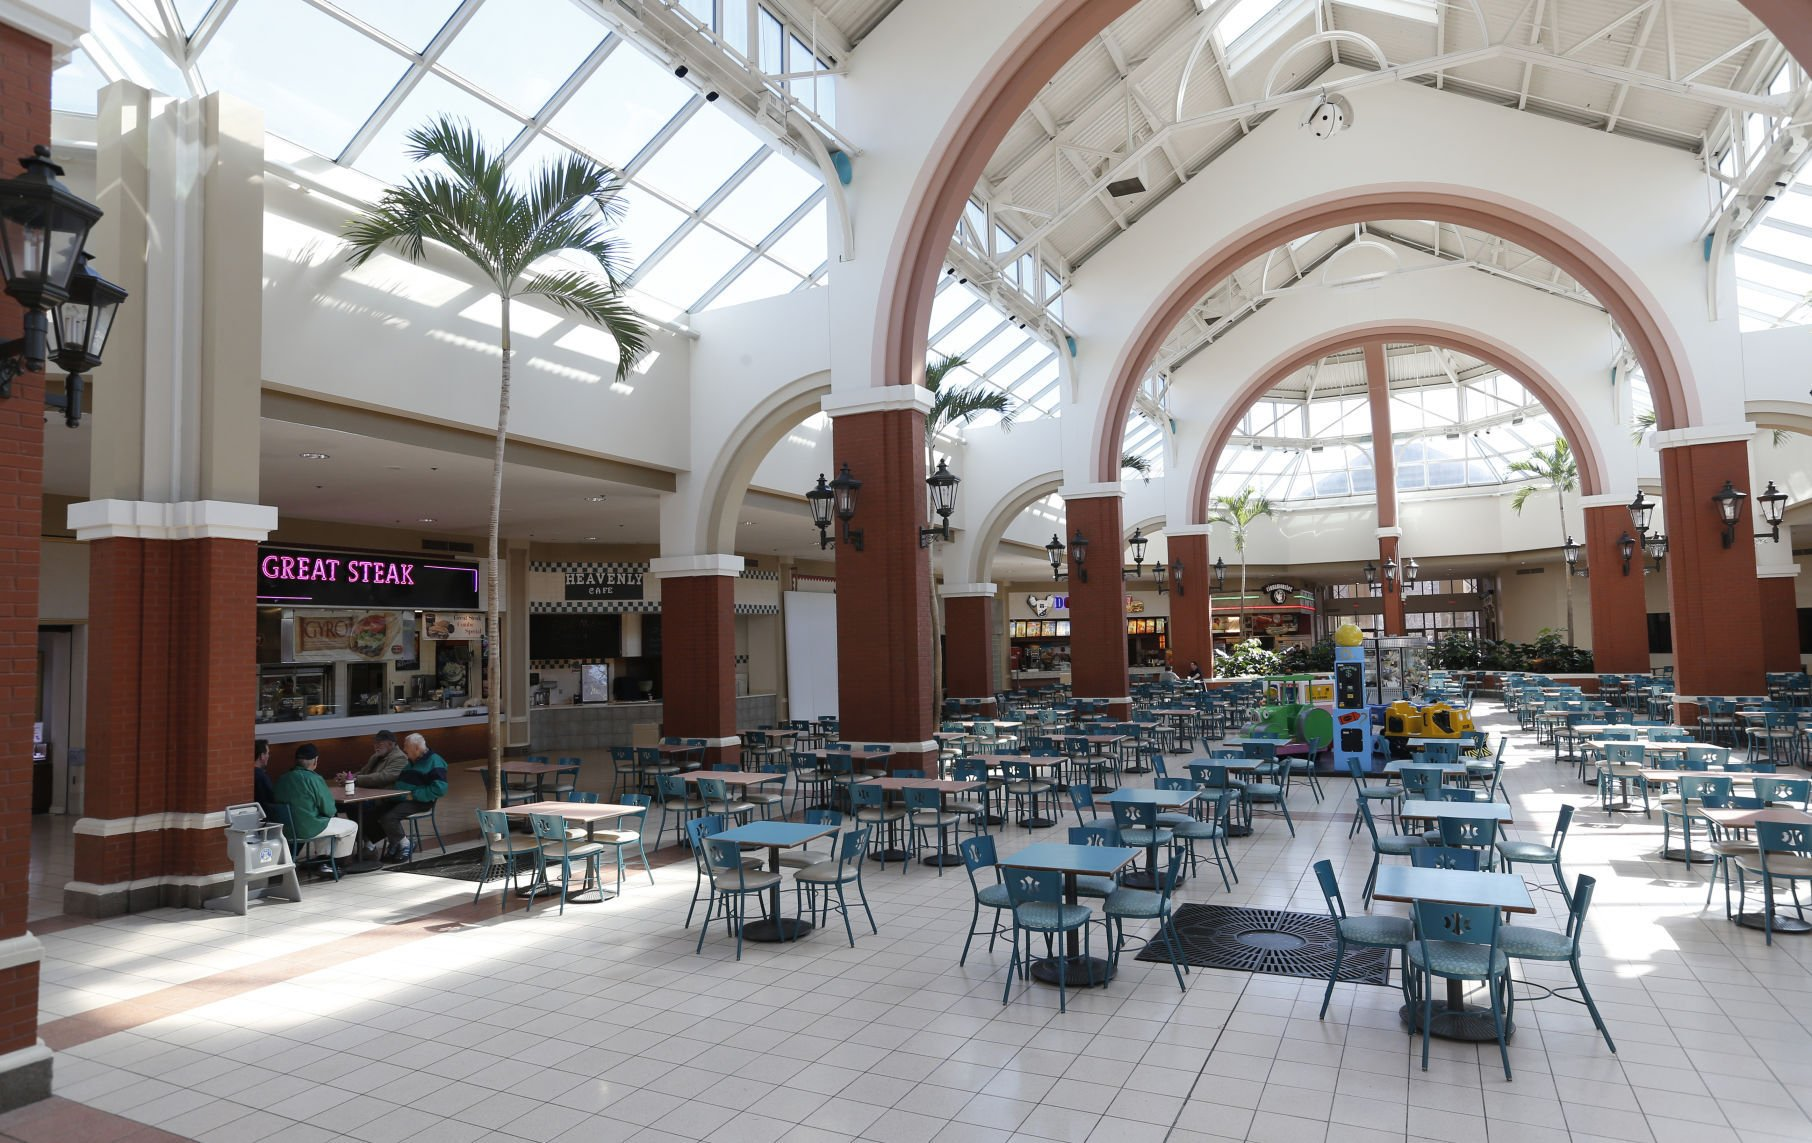 The new owner of Virginia Center Commons